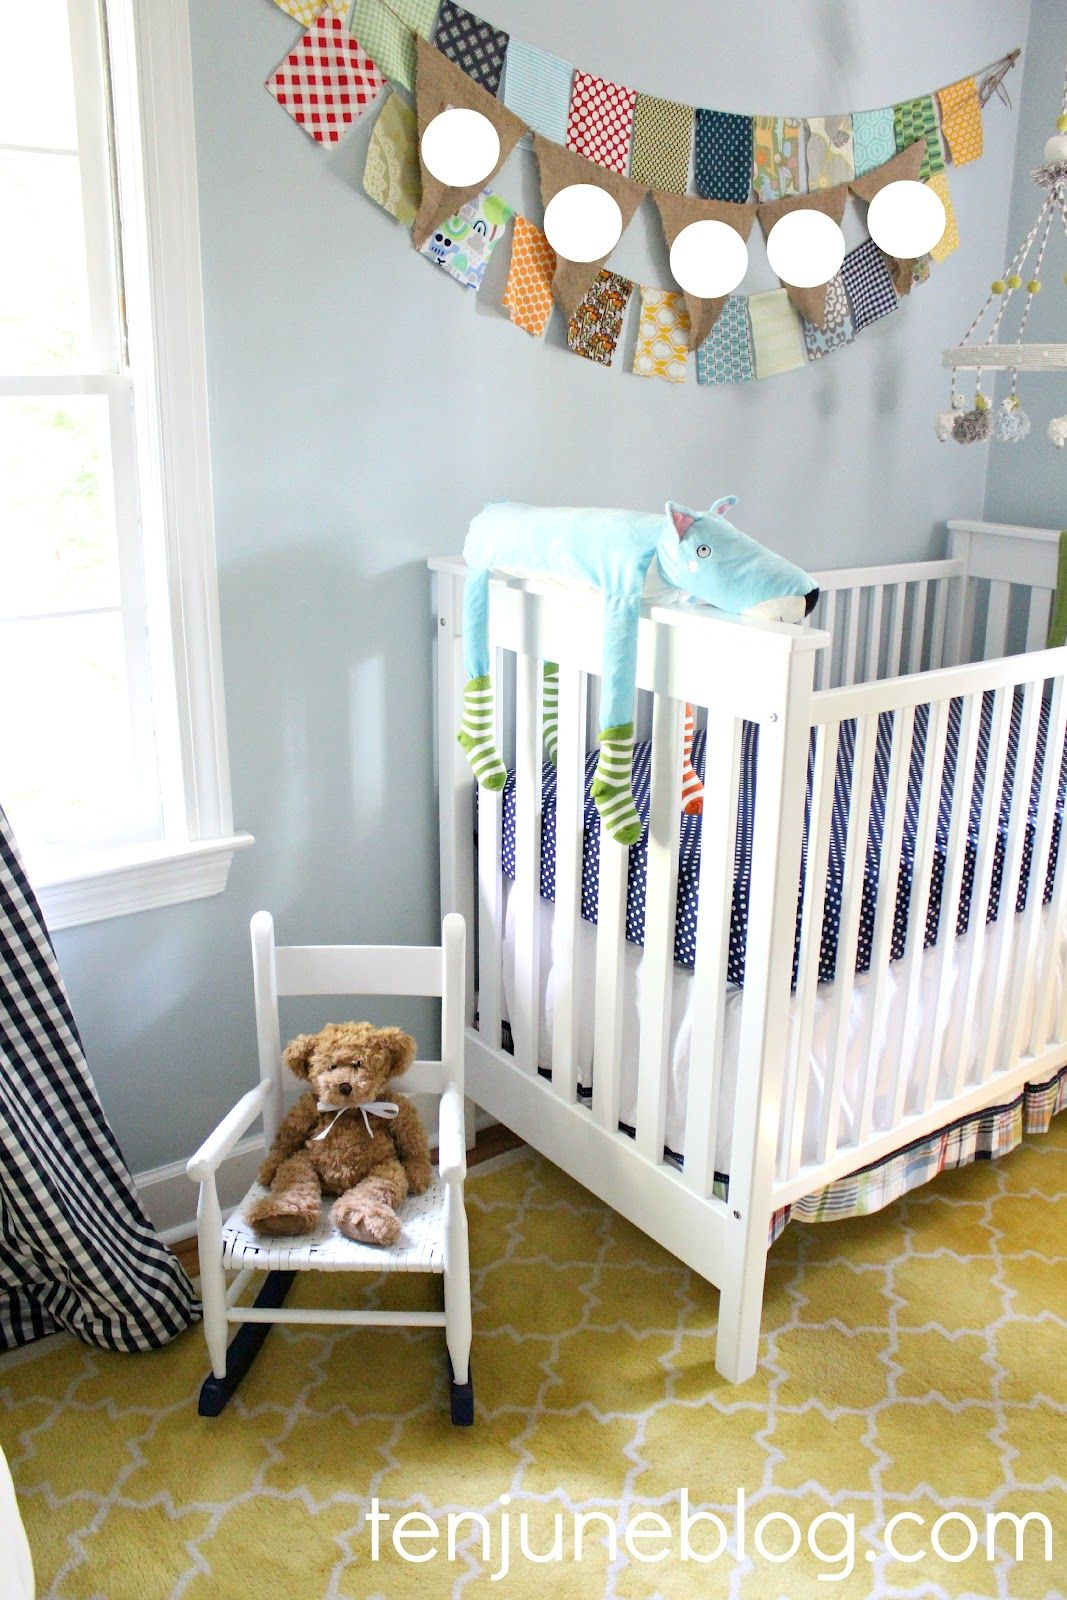 Baby Boy Room Color Ideas: Sherwin-Williams Sleepy Blue (SW 6225) -- Ten June Blog